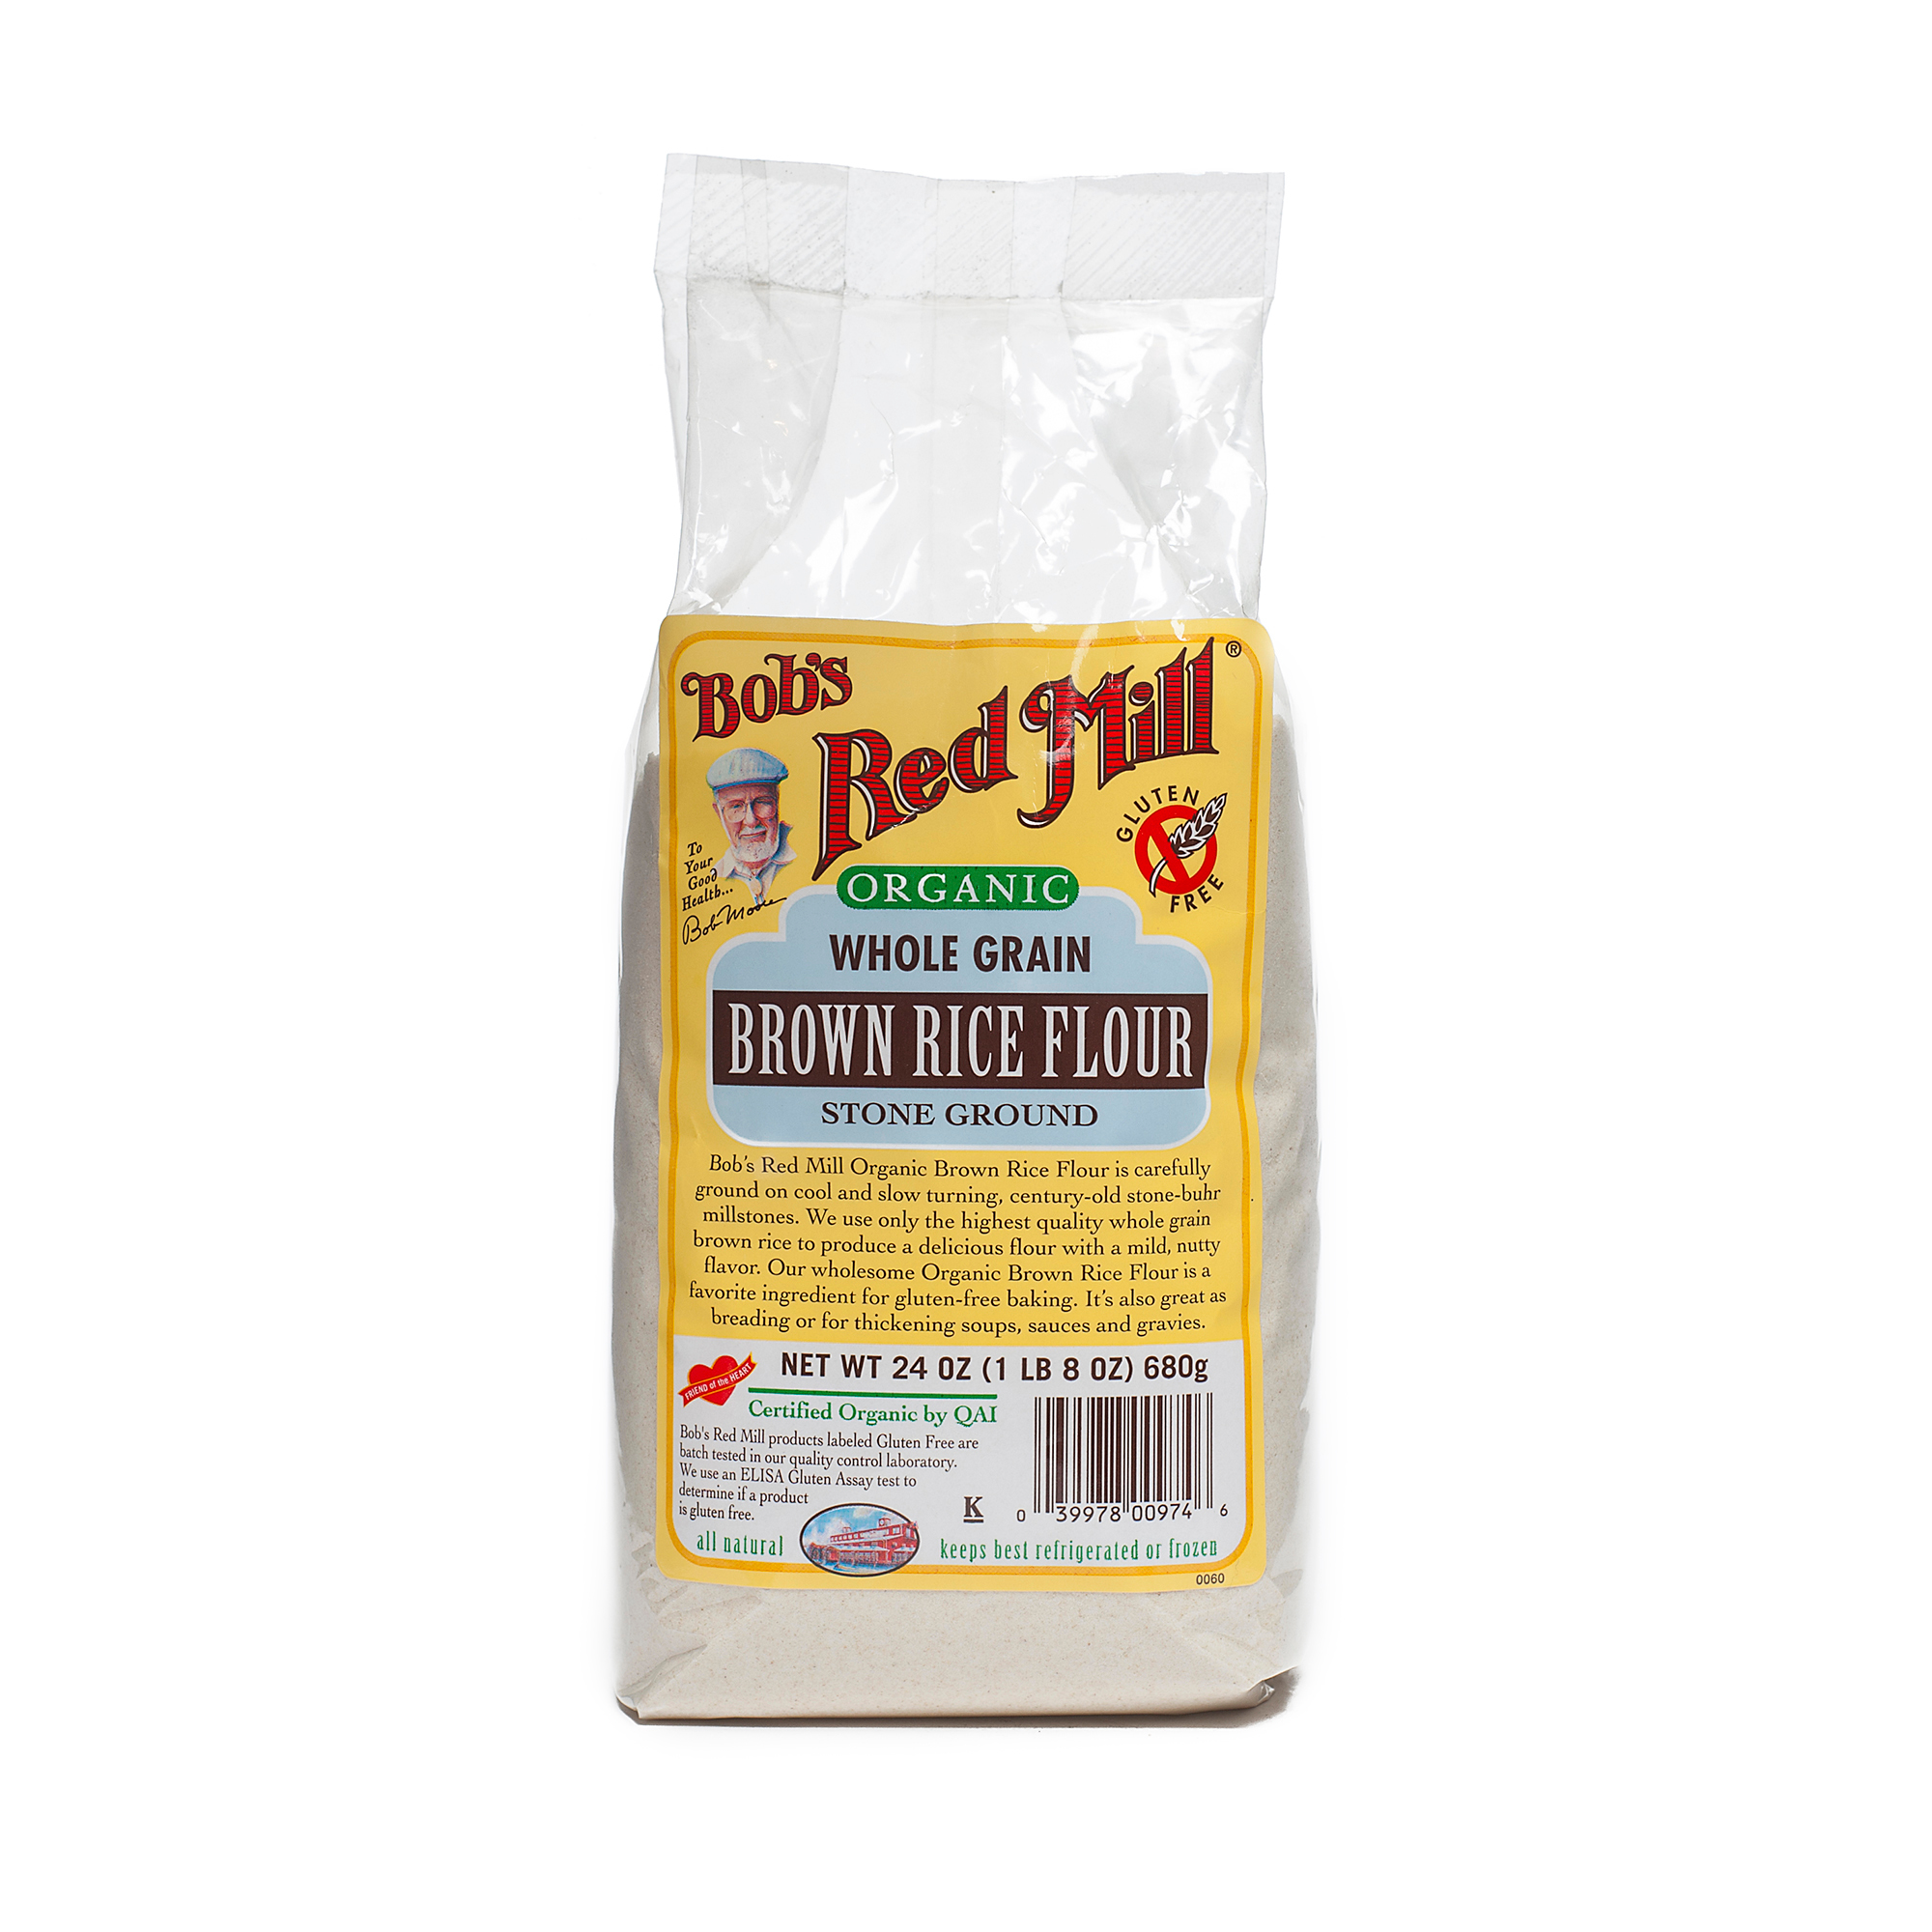 Organic Brown Rice Flour by Bob's Red Mill - Thrive Market Red Rice Flour